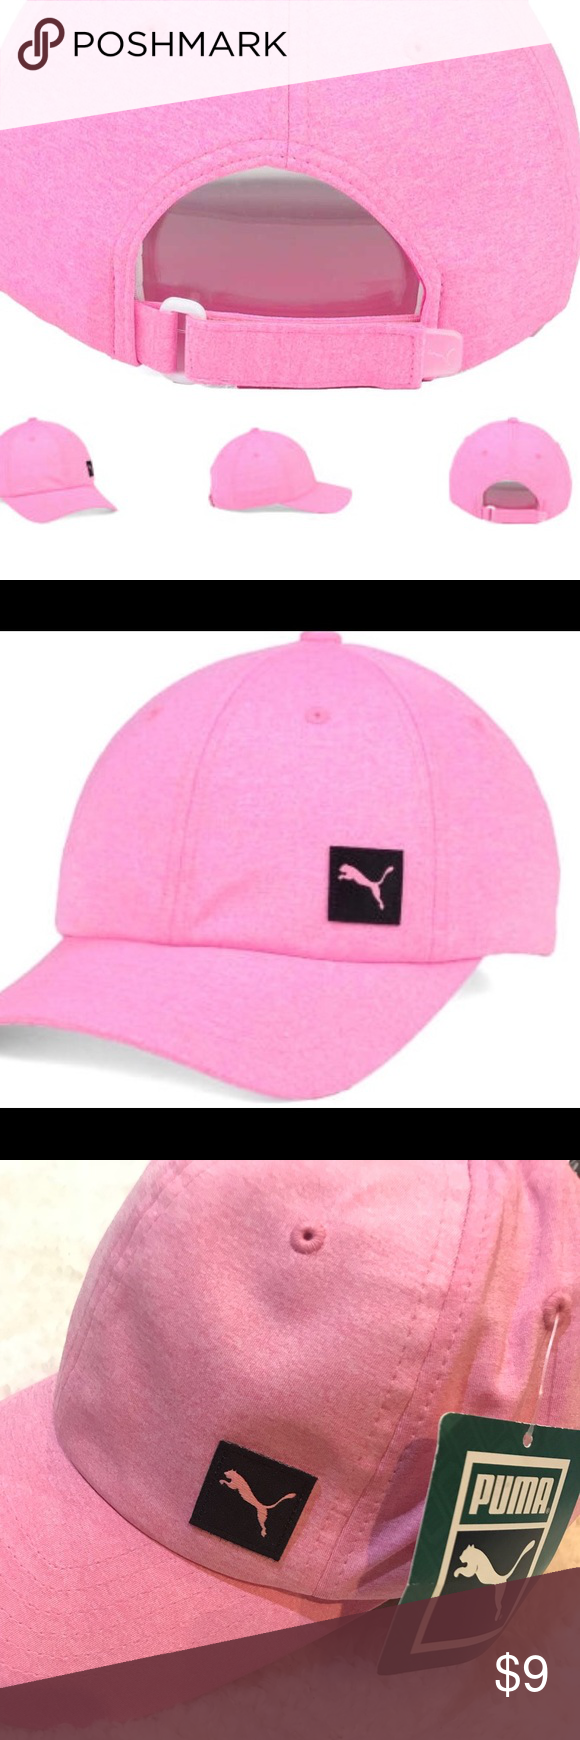 033062125b9 Puma Women s Culture 6 Panel Adjustable Cap Style  20892441 Color  Pink  Material  Made of 90% Polyester